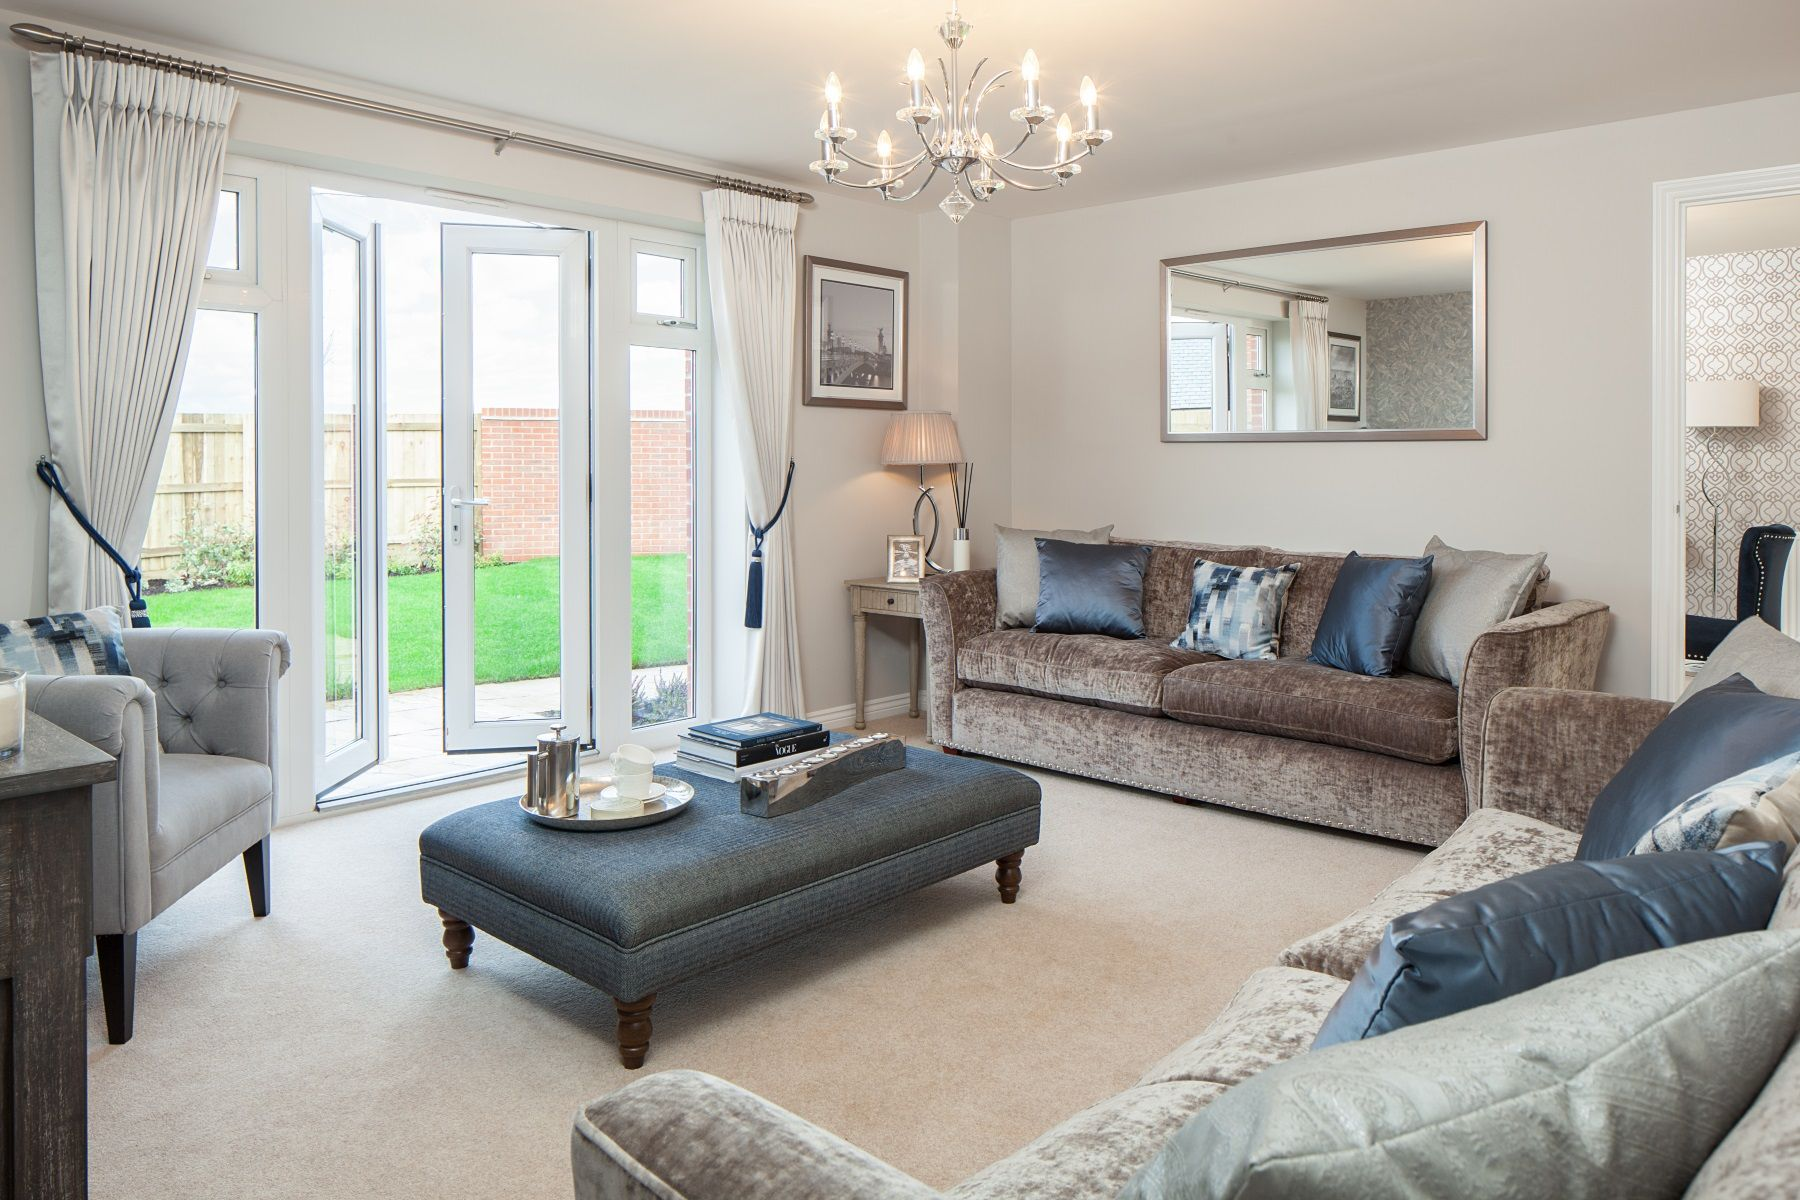 TW Exeter - Cranbrook - Thornford example living room